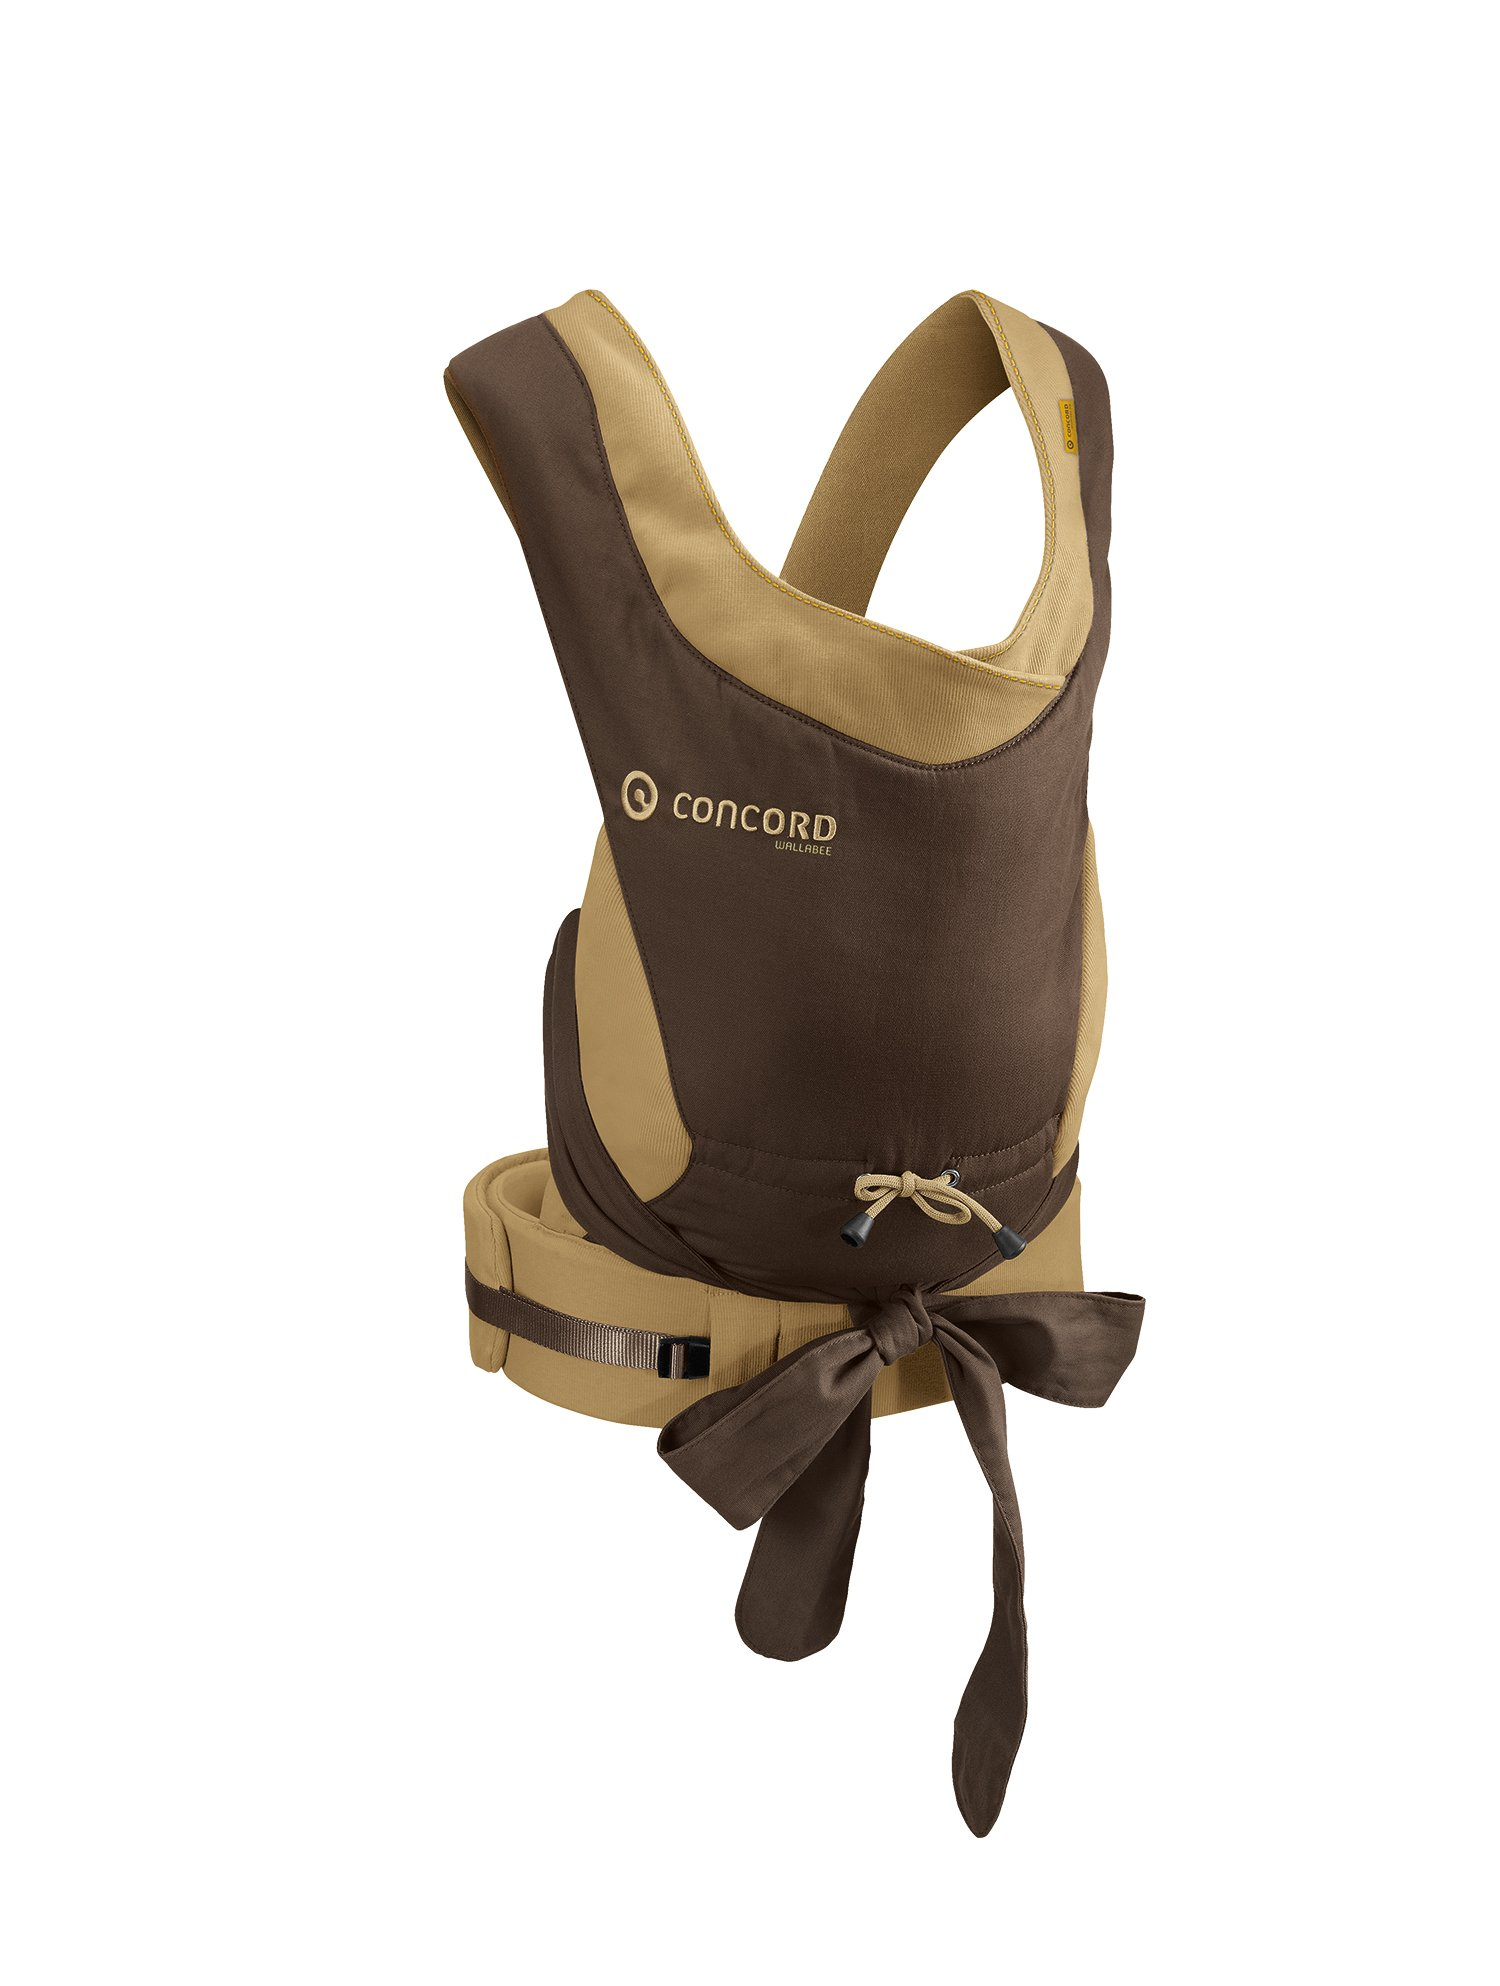 Concord Wallabee Baby Carrier (Walnut Brown) Concord Can be worn on the front or the back, quick and easy to put on Ergonomic design: corresponds to the spread-squat sitting positionrecommended by orthopaedic specialists Wide shoulder strap with cross-over belt guide to ensure optimum weightdistribution 1